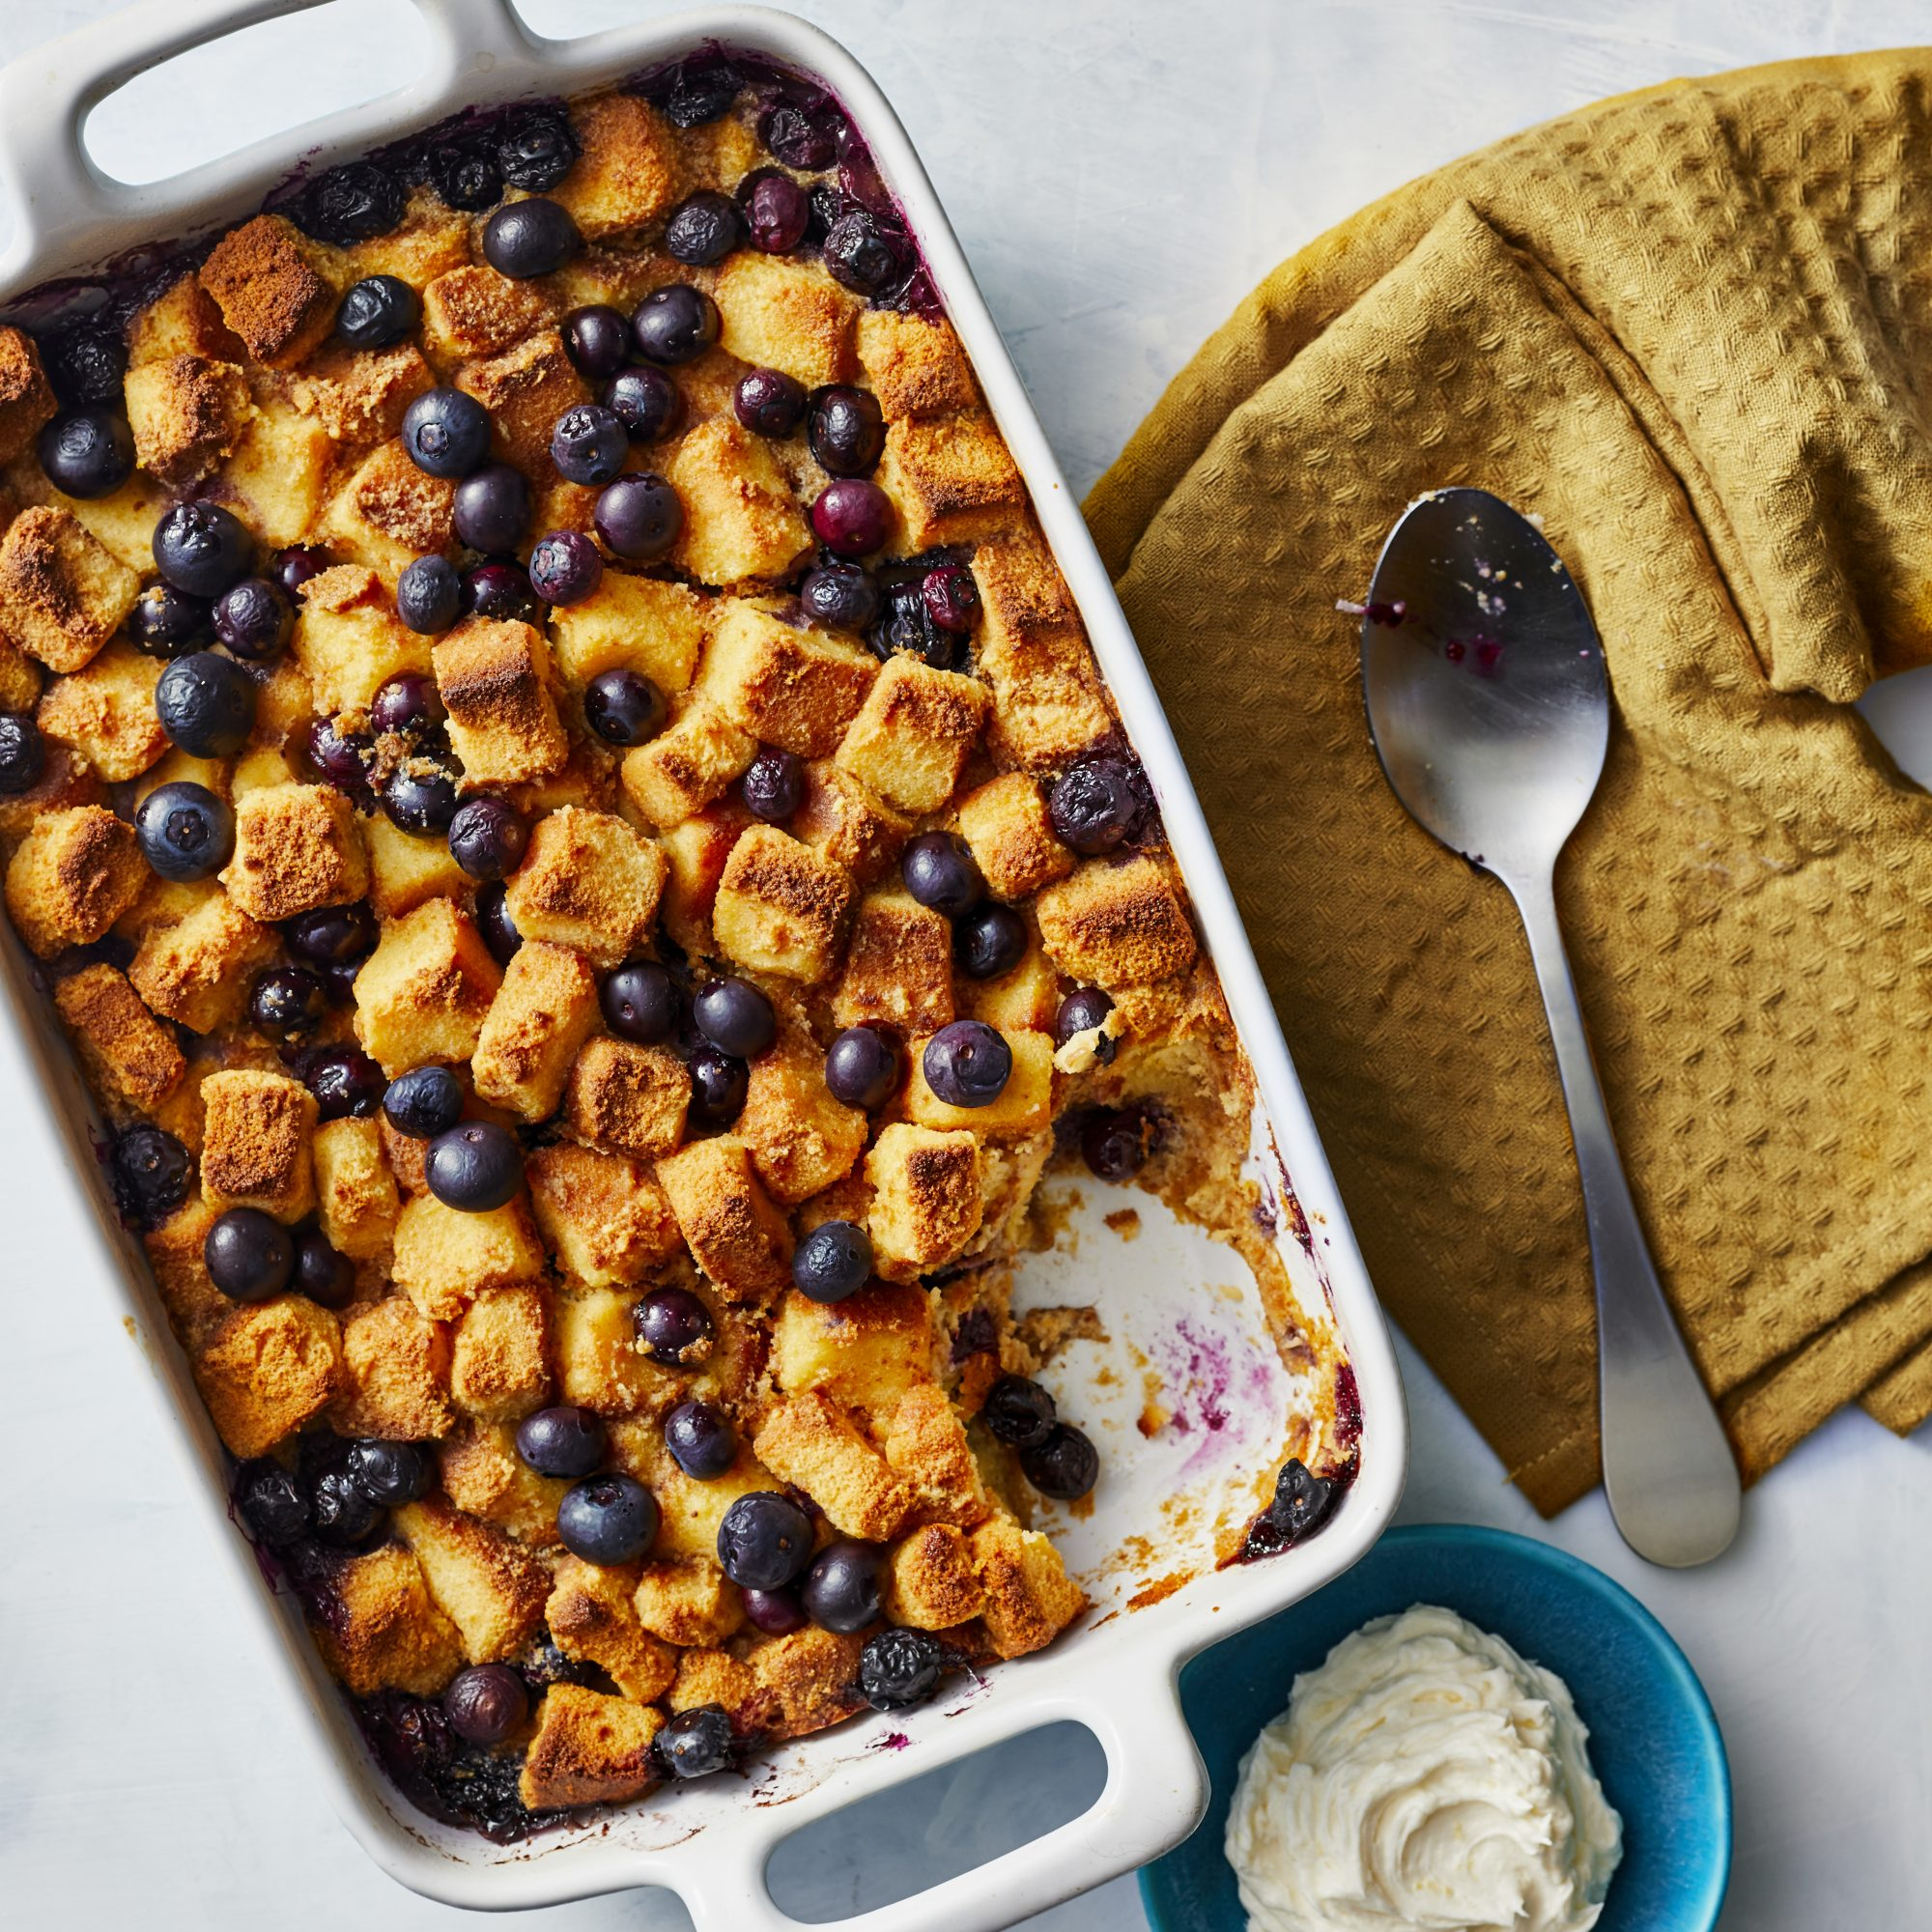 Blueberry Bread Pudding With Lemon Hard Sauce image